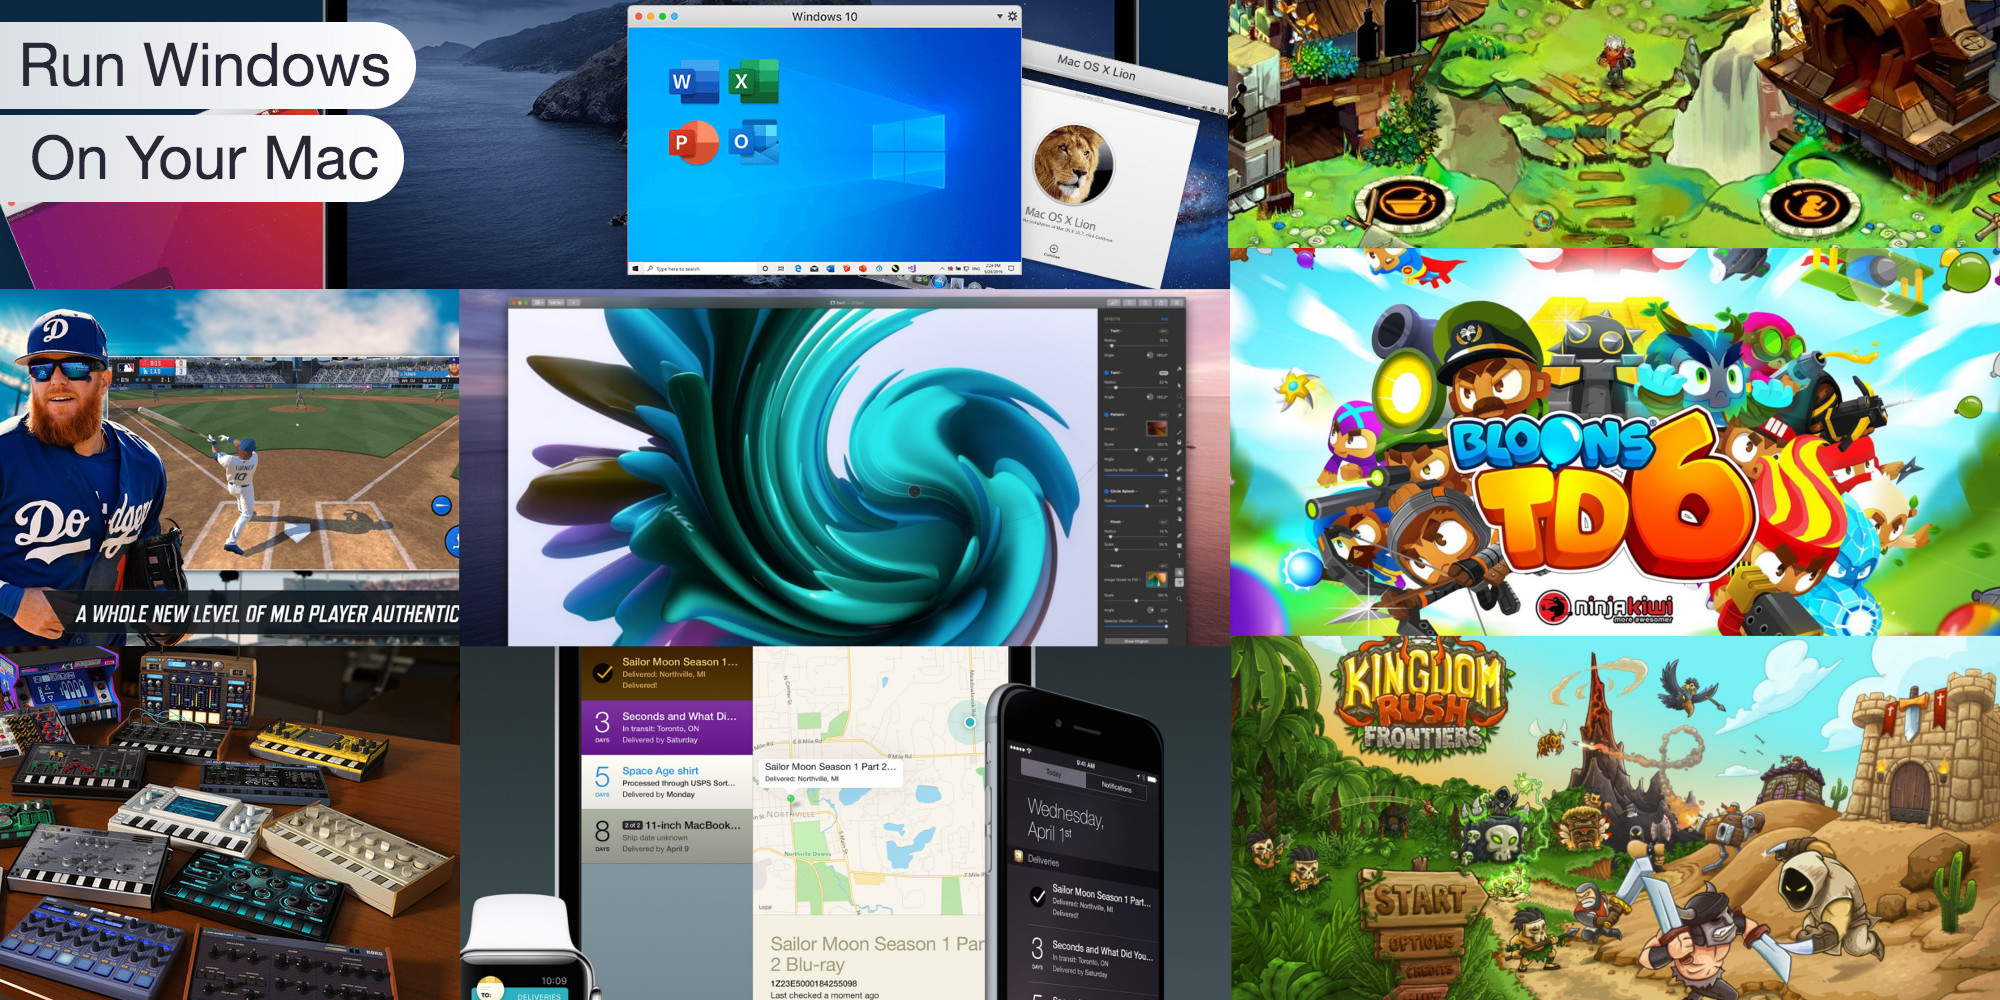 All of the best iOS/Mac app and game deals for Black Friday 2019